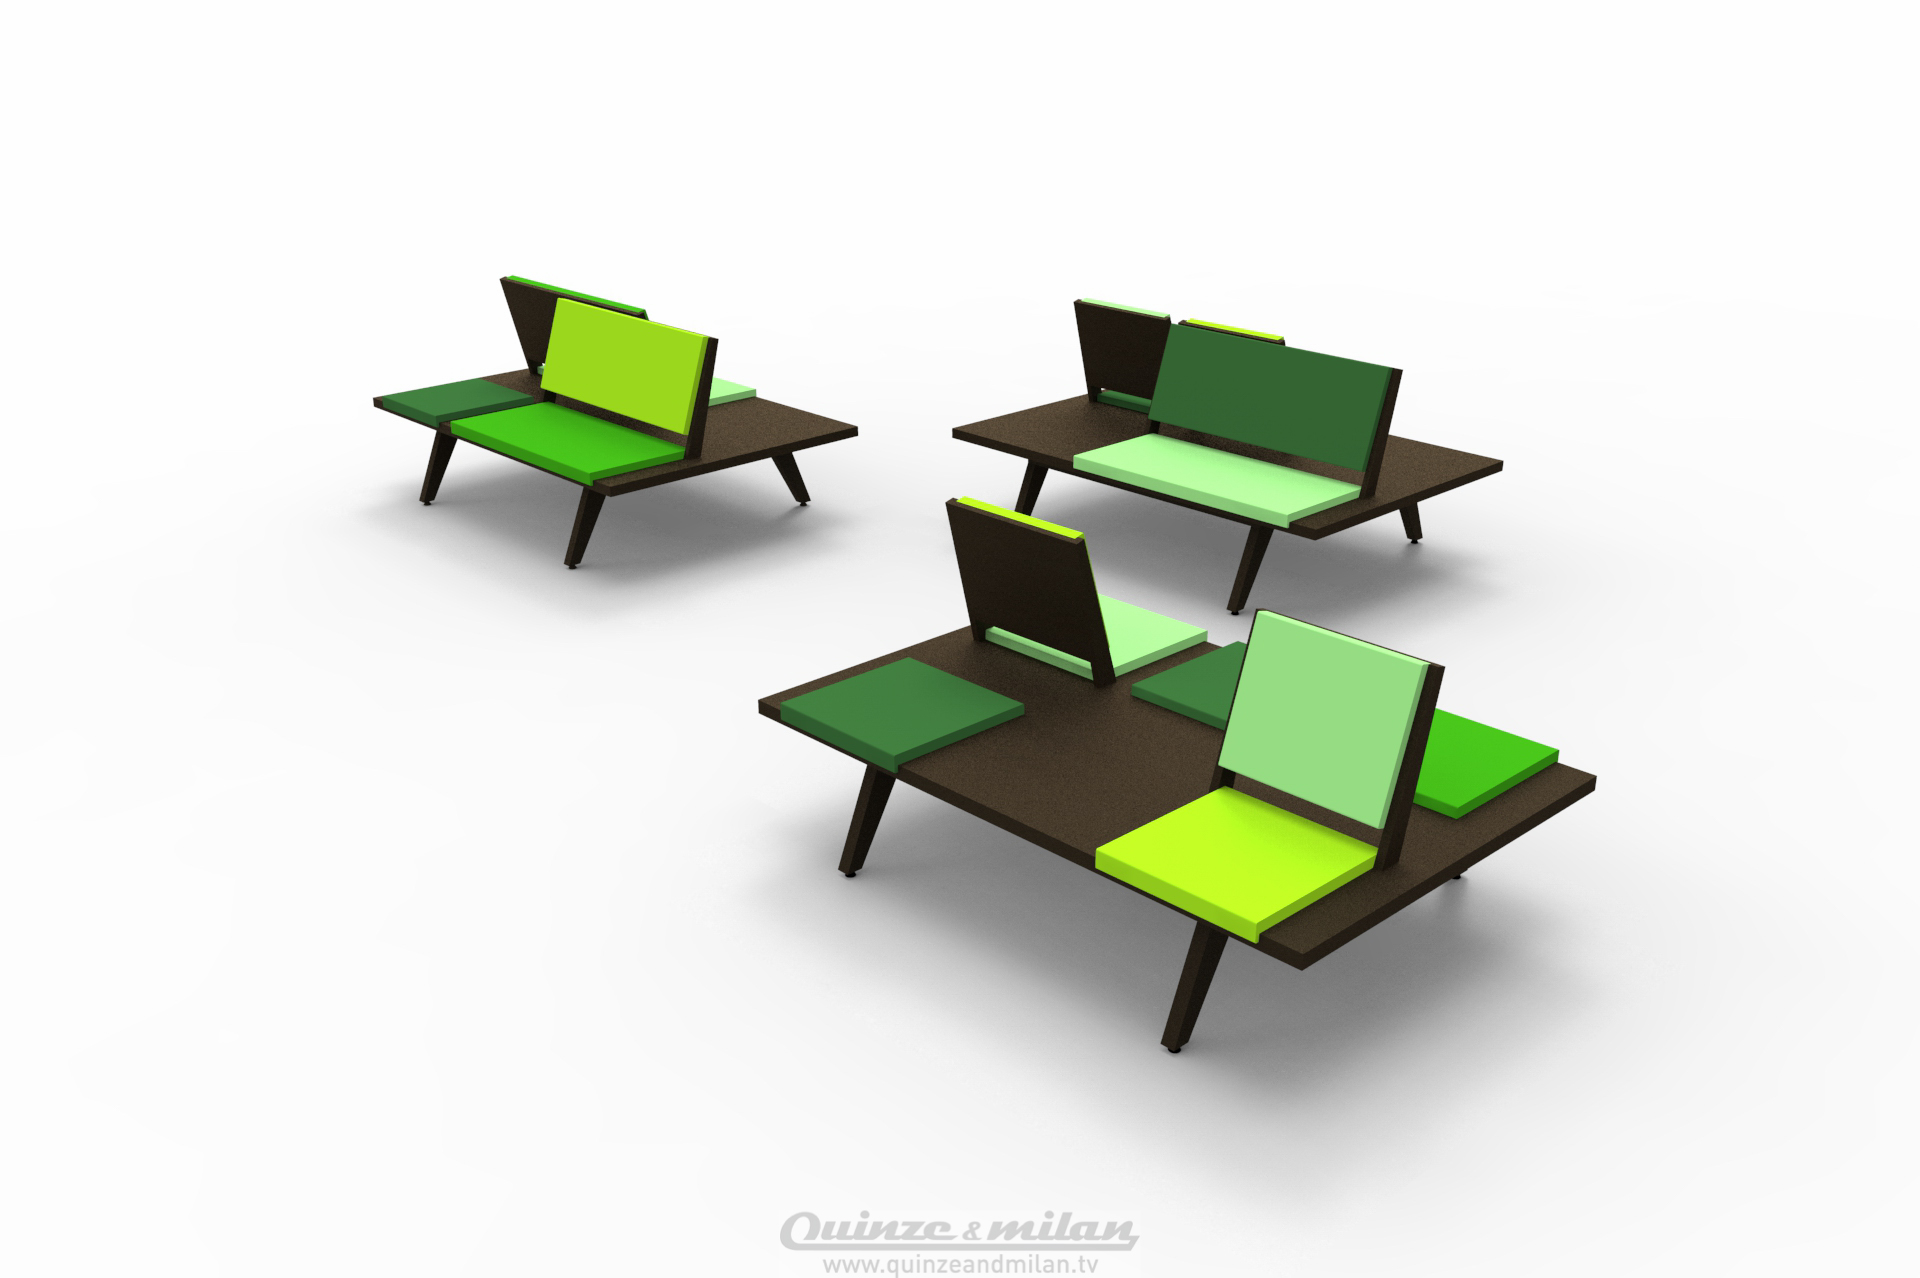 Airbench by Quinze & Milan